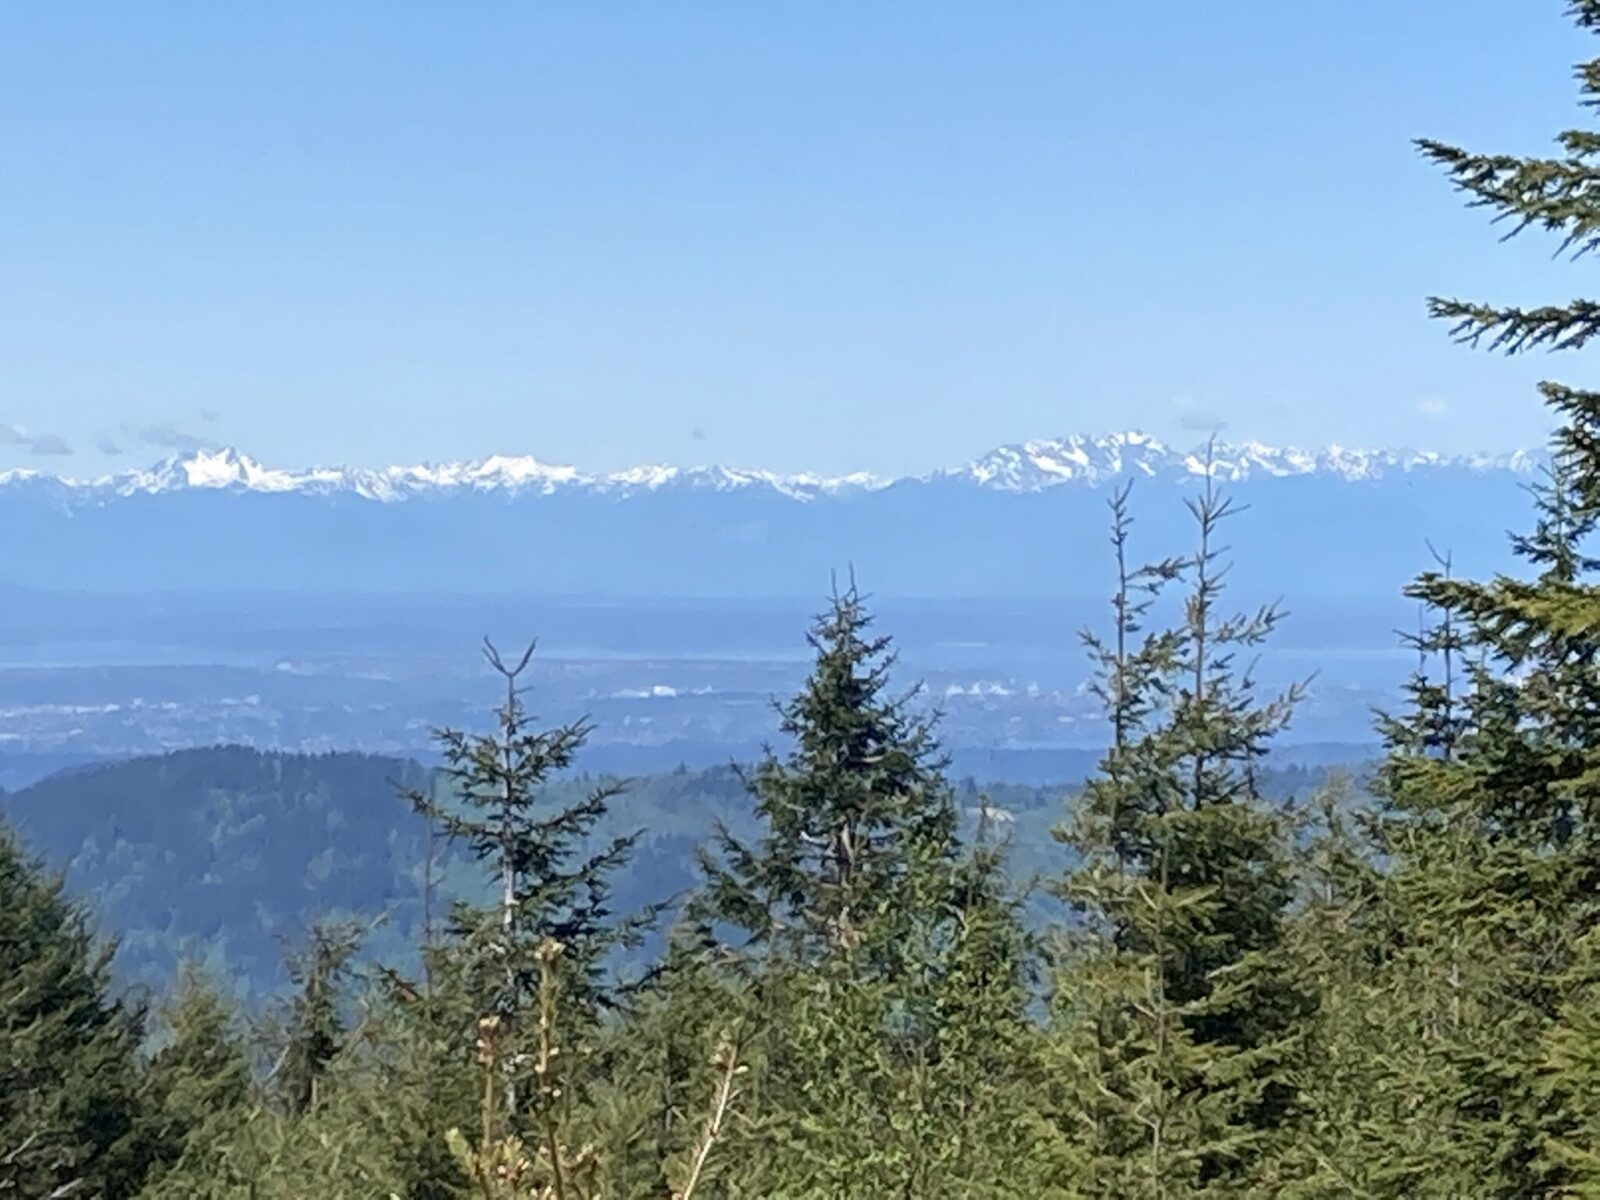 Distant snow capped mountains. In the foreground are different layers of forested hills, water and towns.